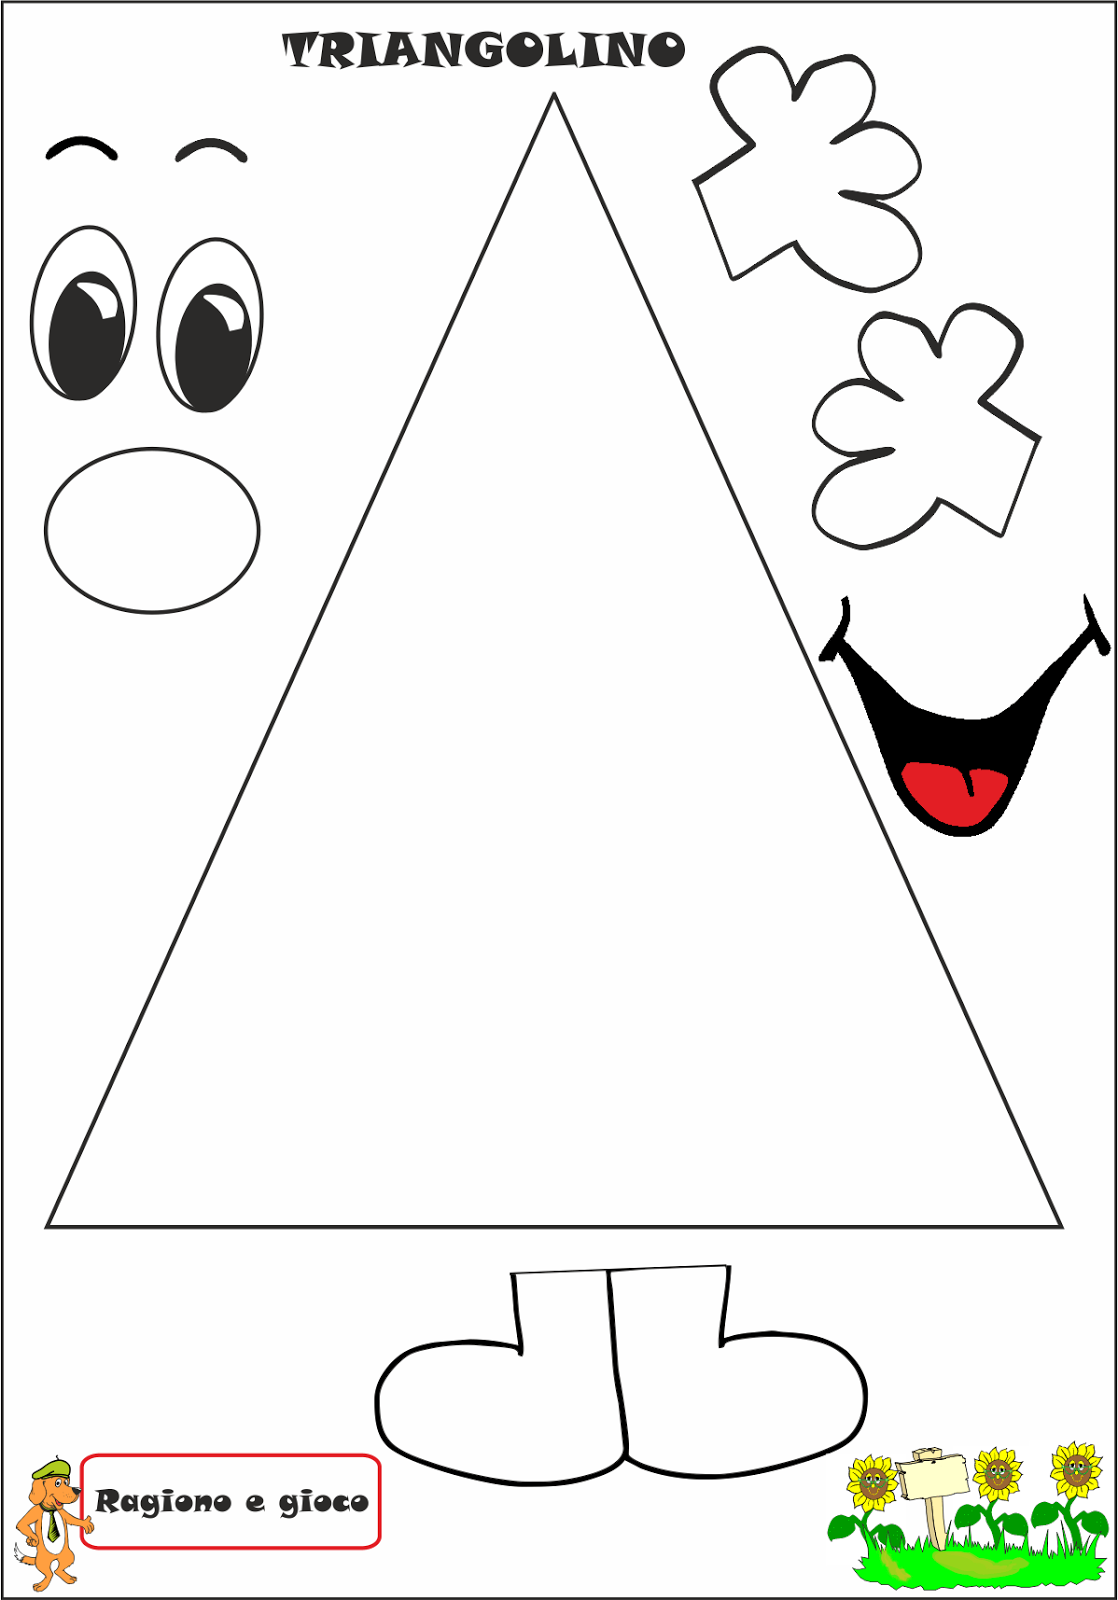 Blank Gingerbread House Coloring Pages Annemarie Blackden Ablackden